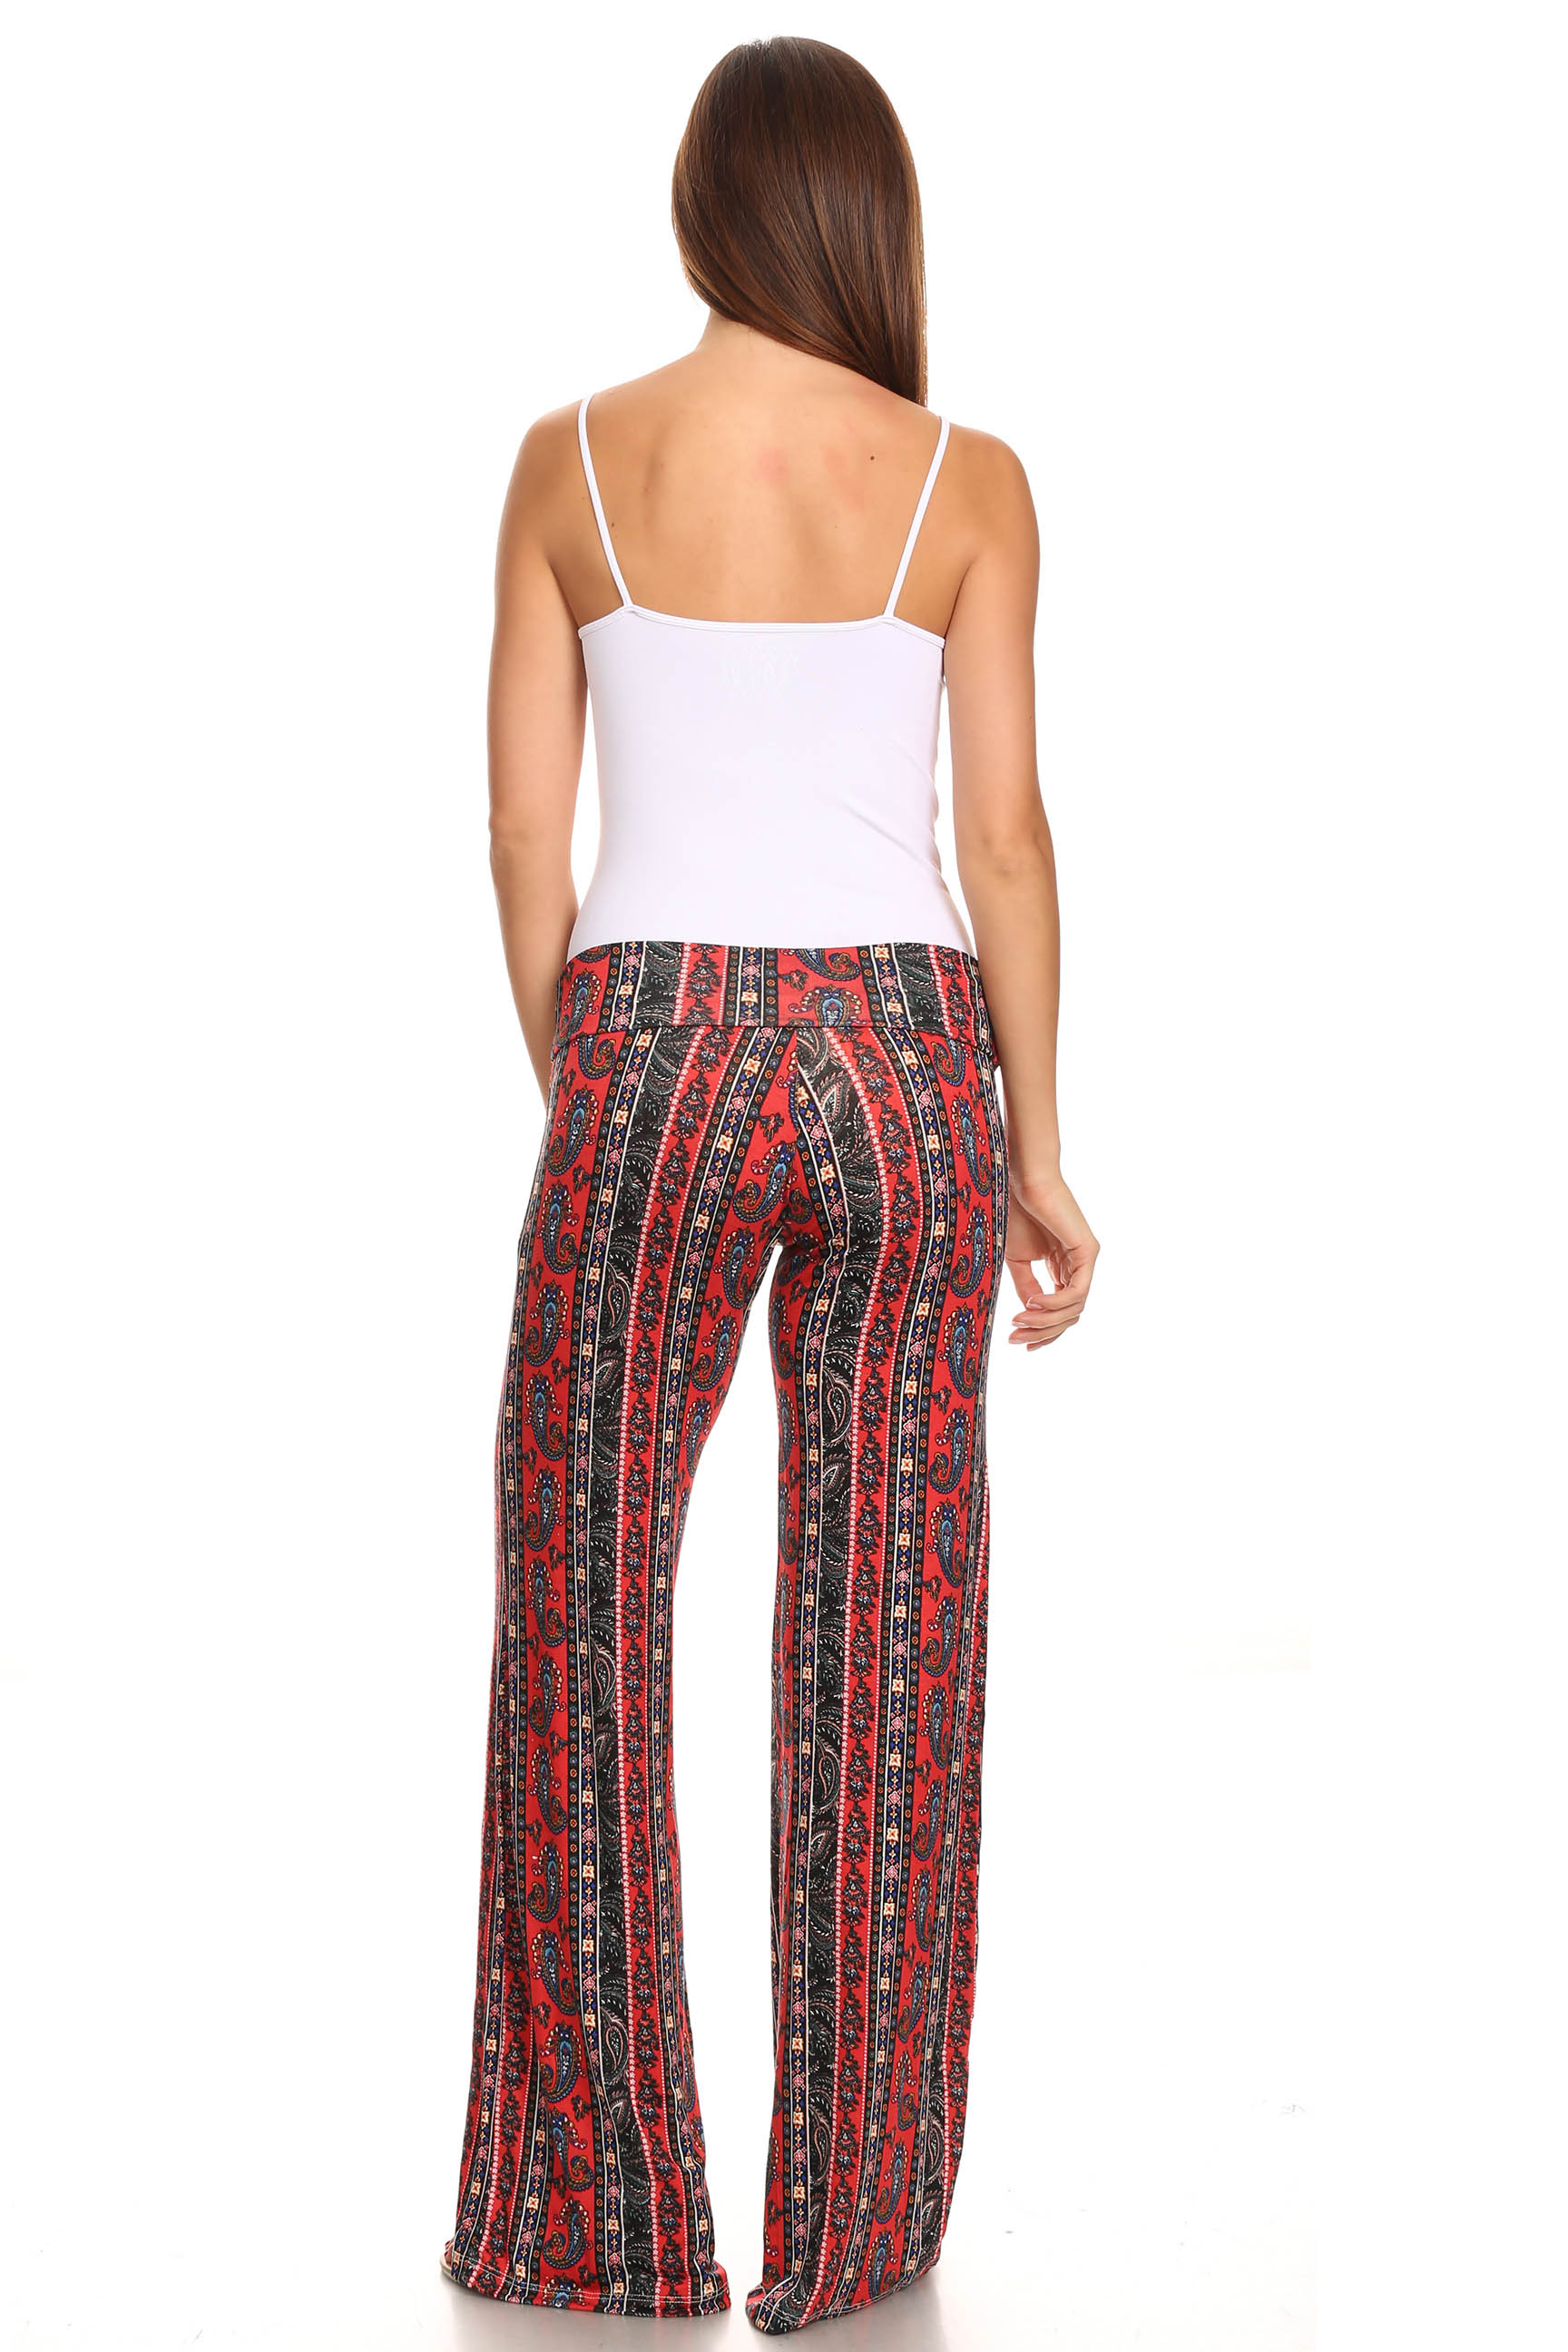 Beautiful Want To Look Trendy And Stylish Women Palazzo Clothes, Online Checkout Our Wide Range Of Designer &amp Comfortable , Stylish Palazzos For Women In Delhi NCR Delhi NCRs Largest Shopping Store HotAttires